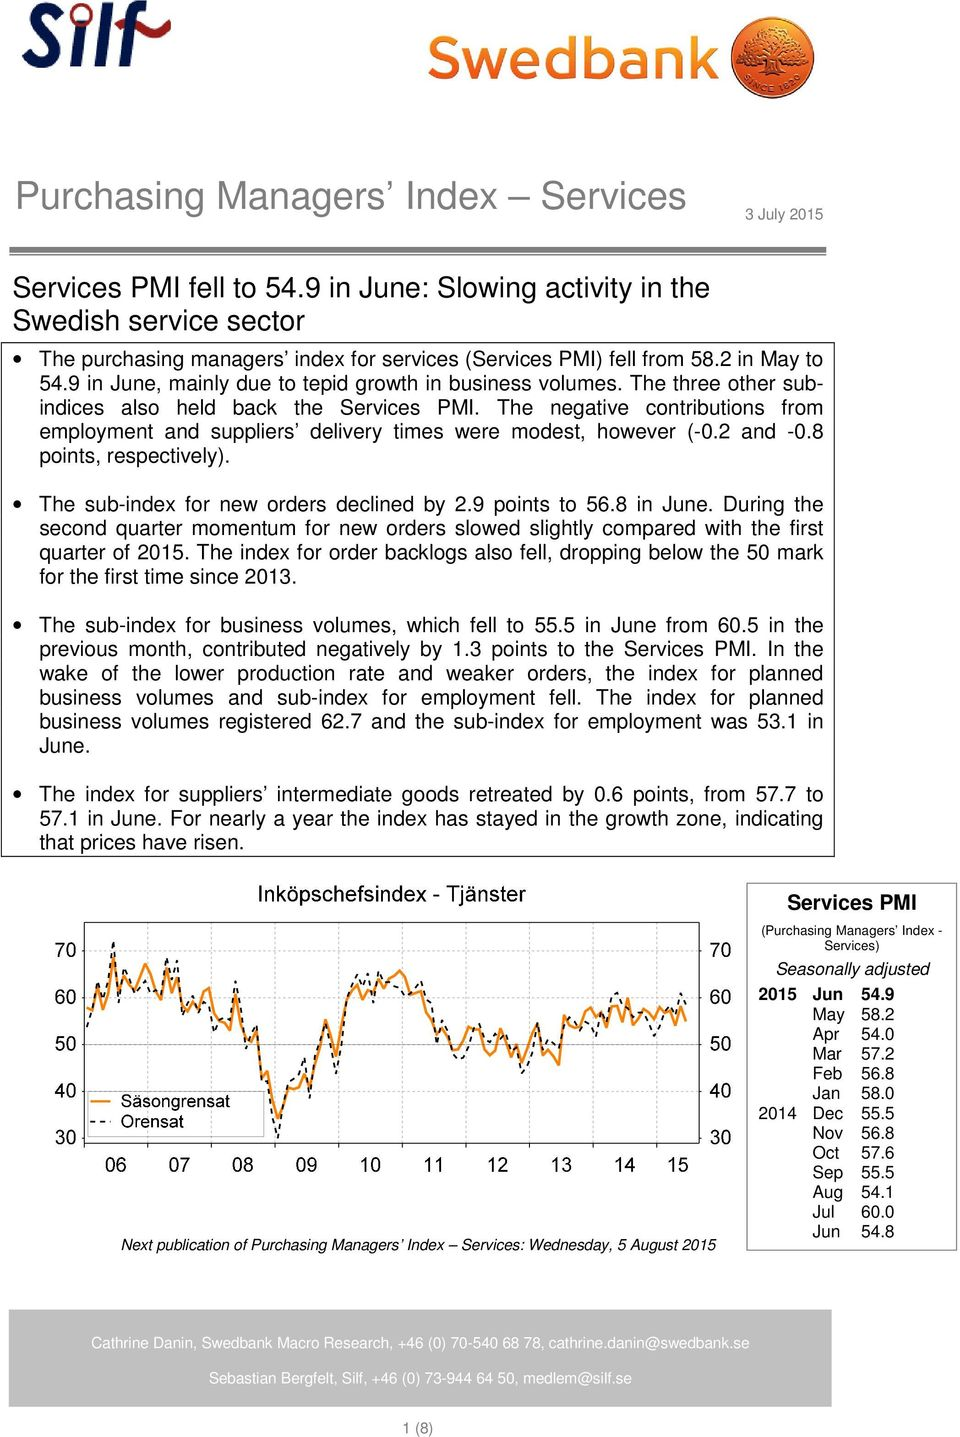 The negative contributions from employment and suppliers delivery times were modest, however (-0.2 and -0.8 points, respectively). The sub-index for new orders declined by 2.9 points to 56.8 in June.